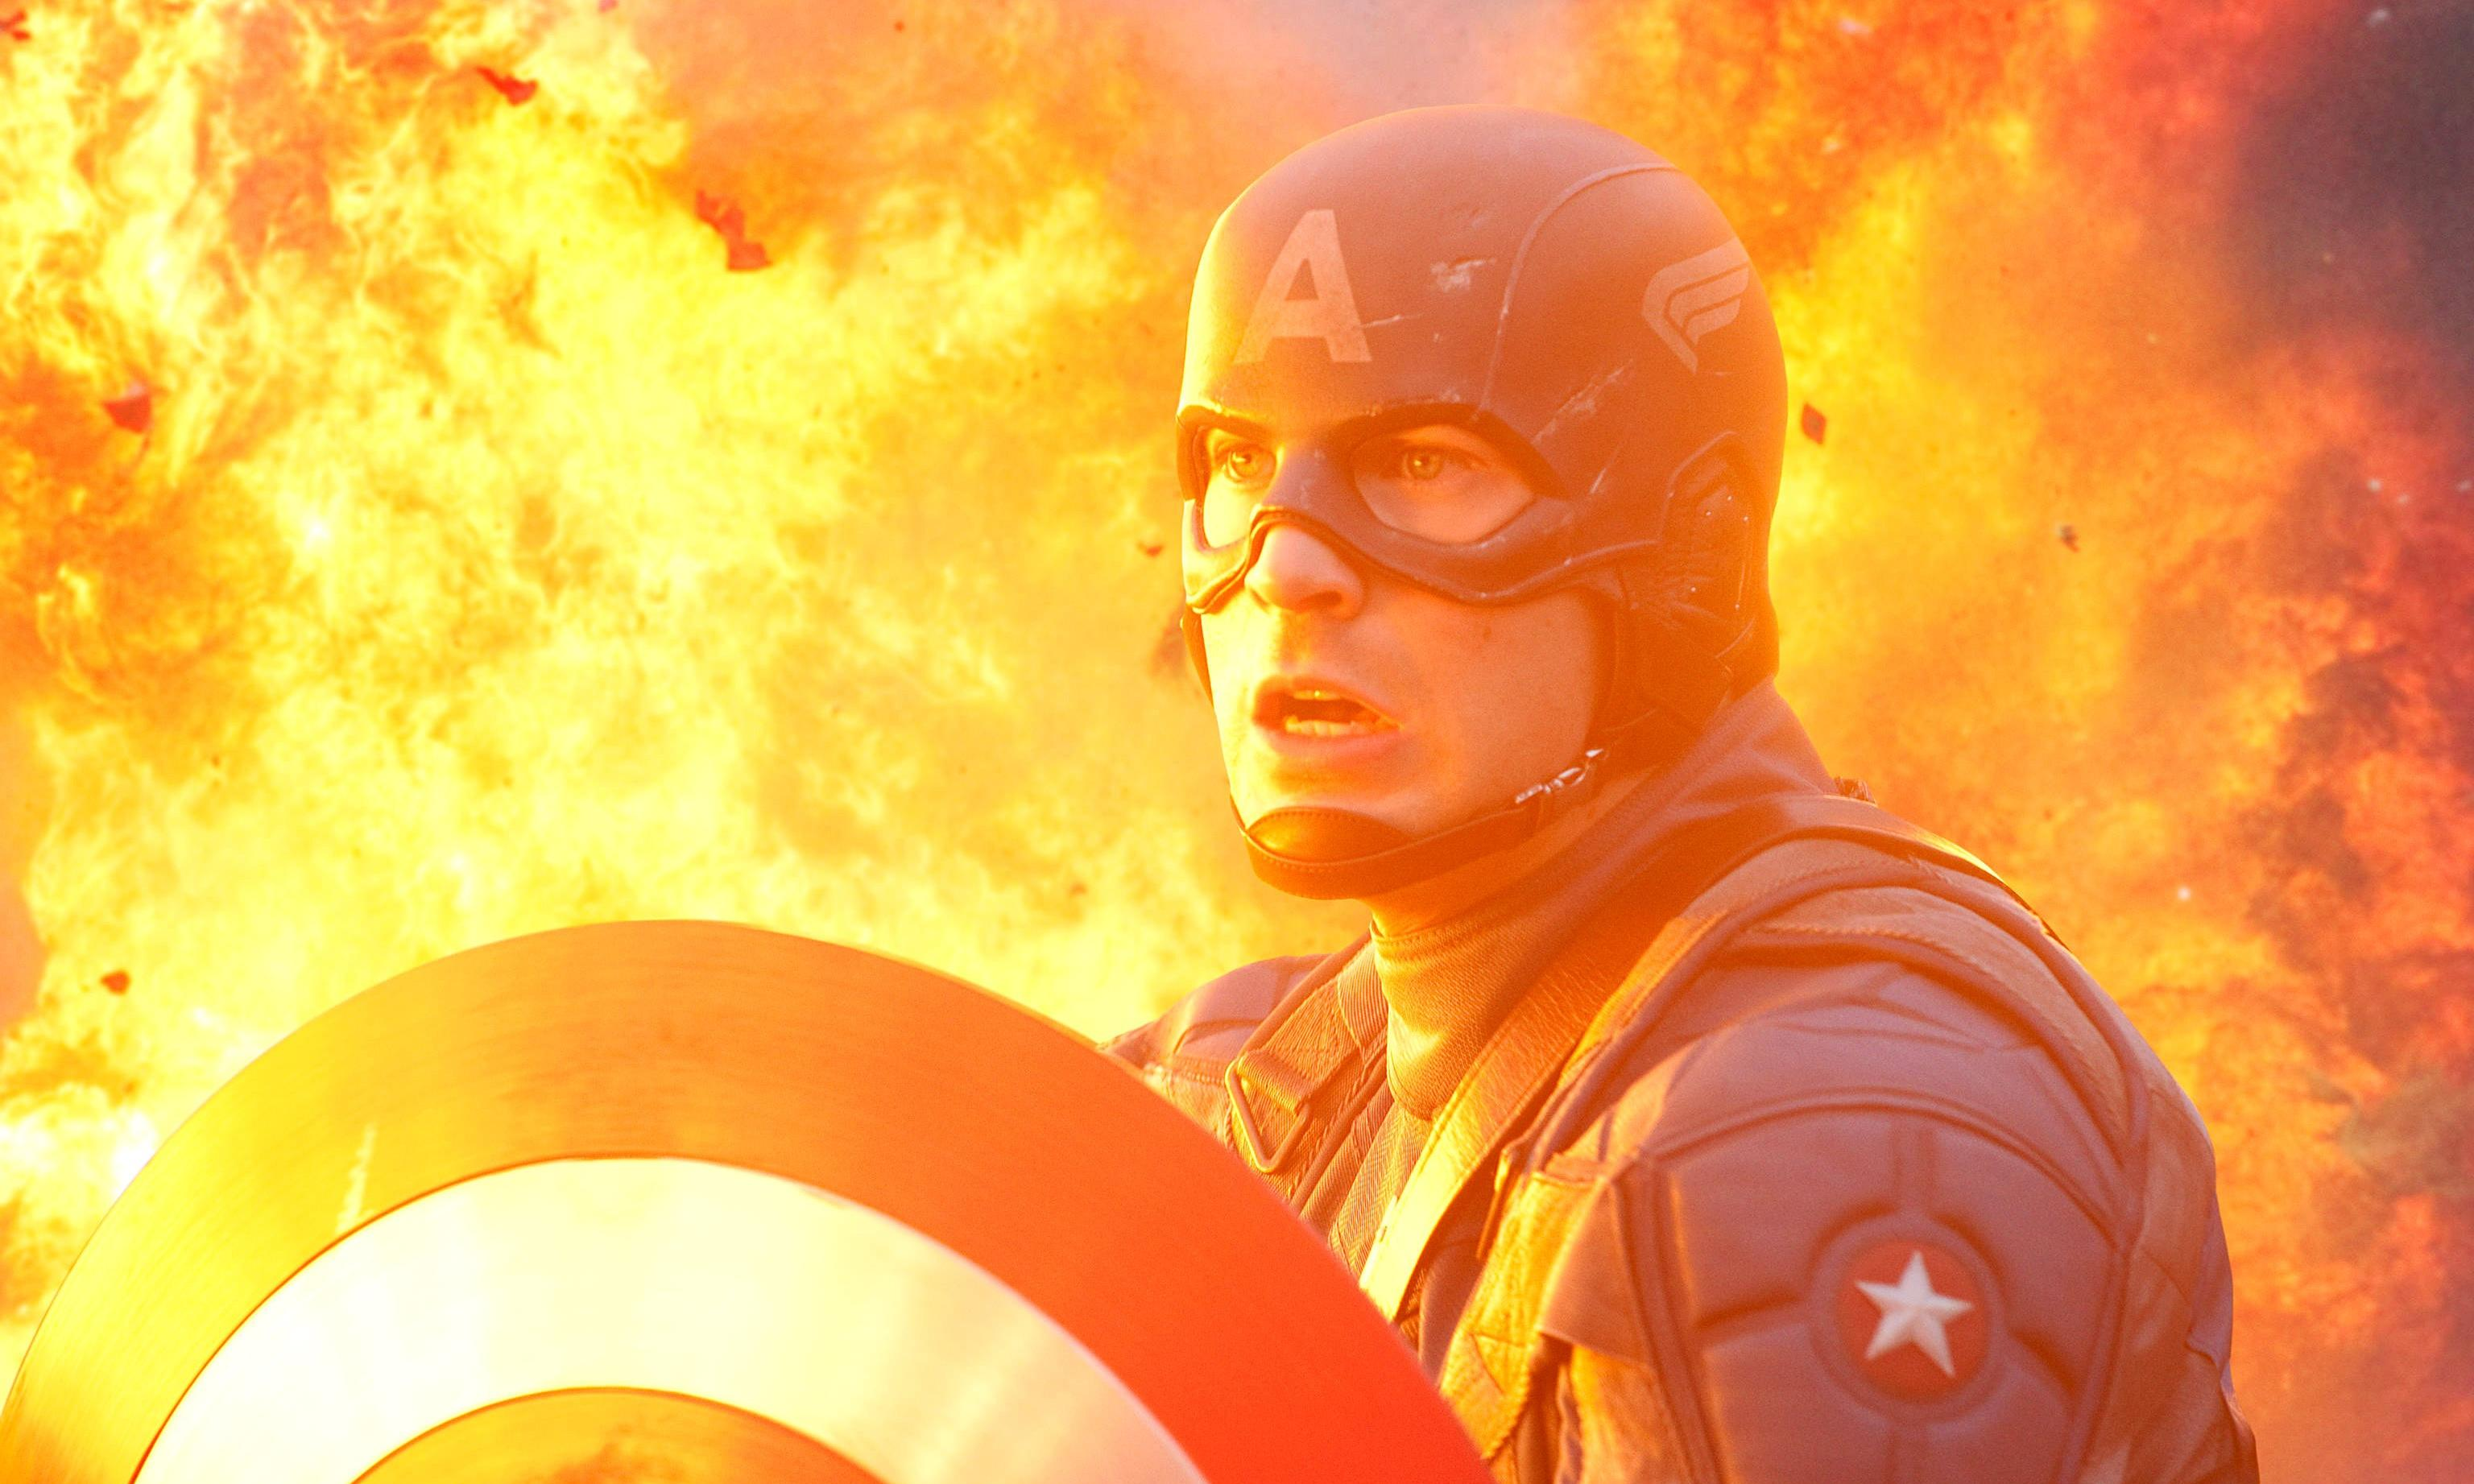 Sorry Marty, but Captain America is daring, serious art